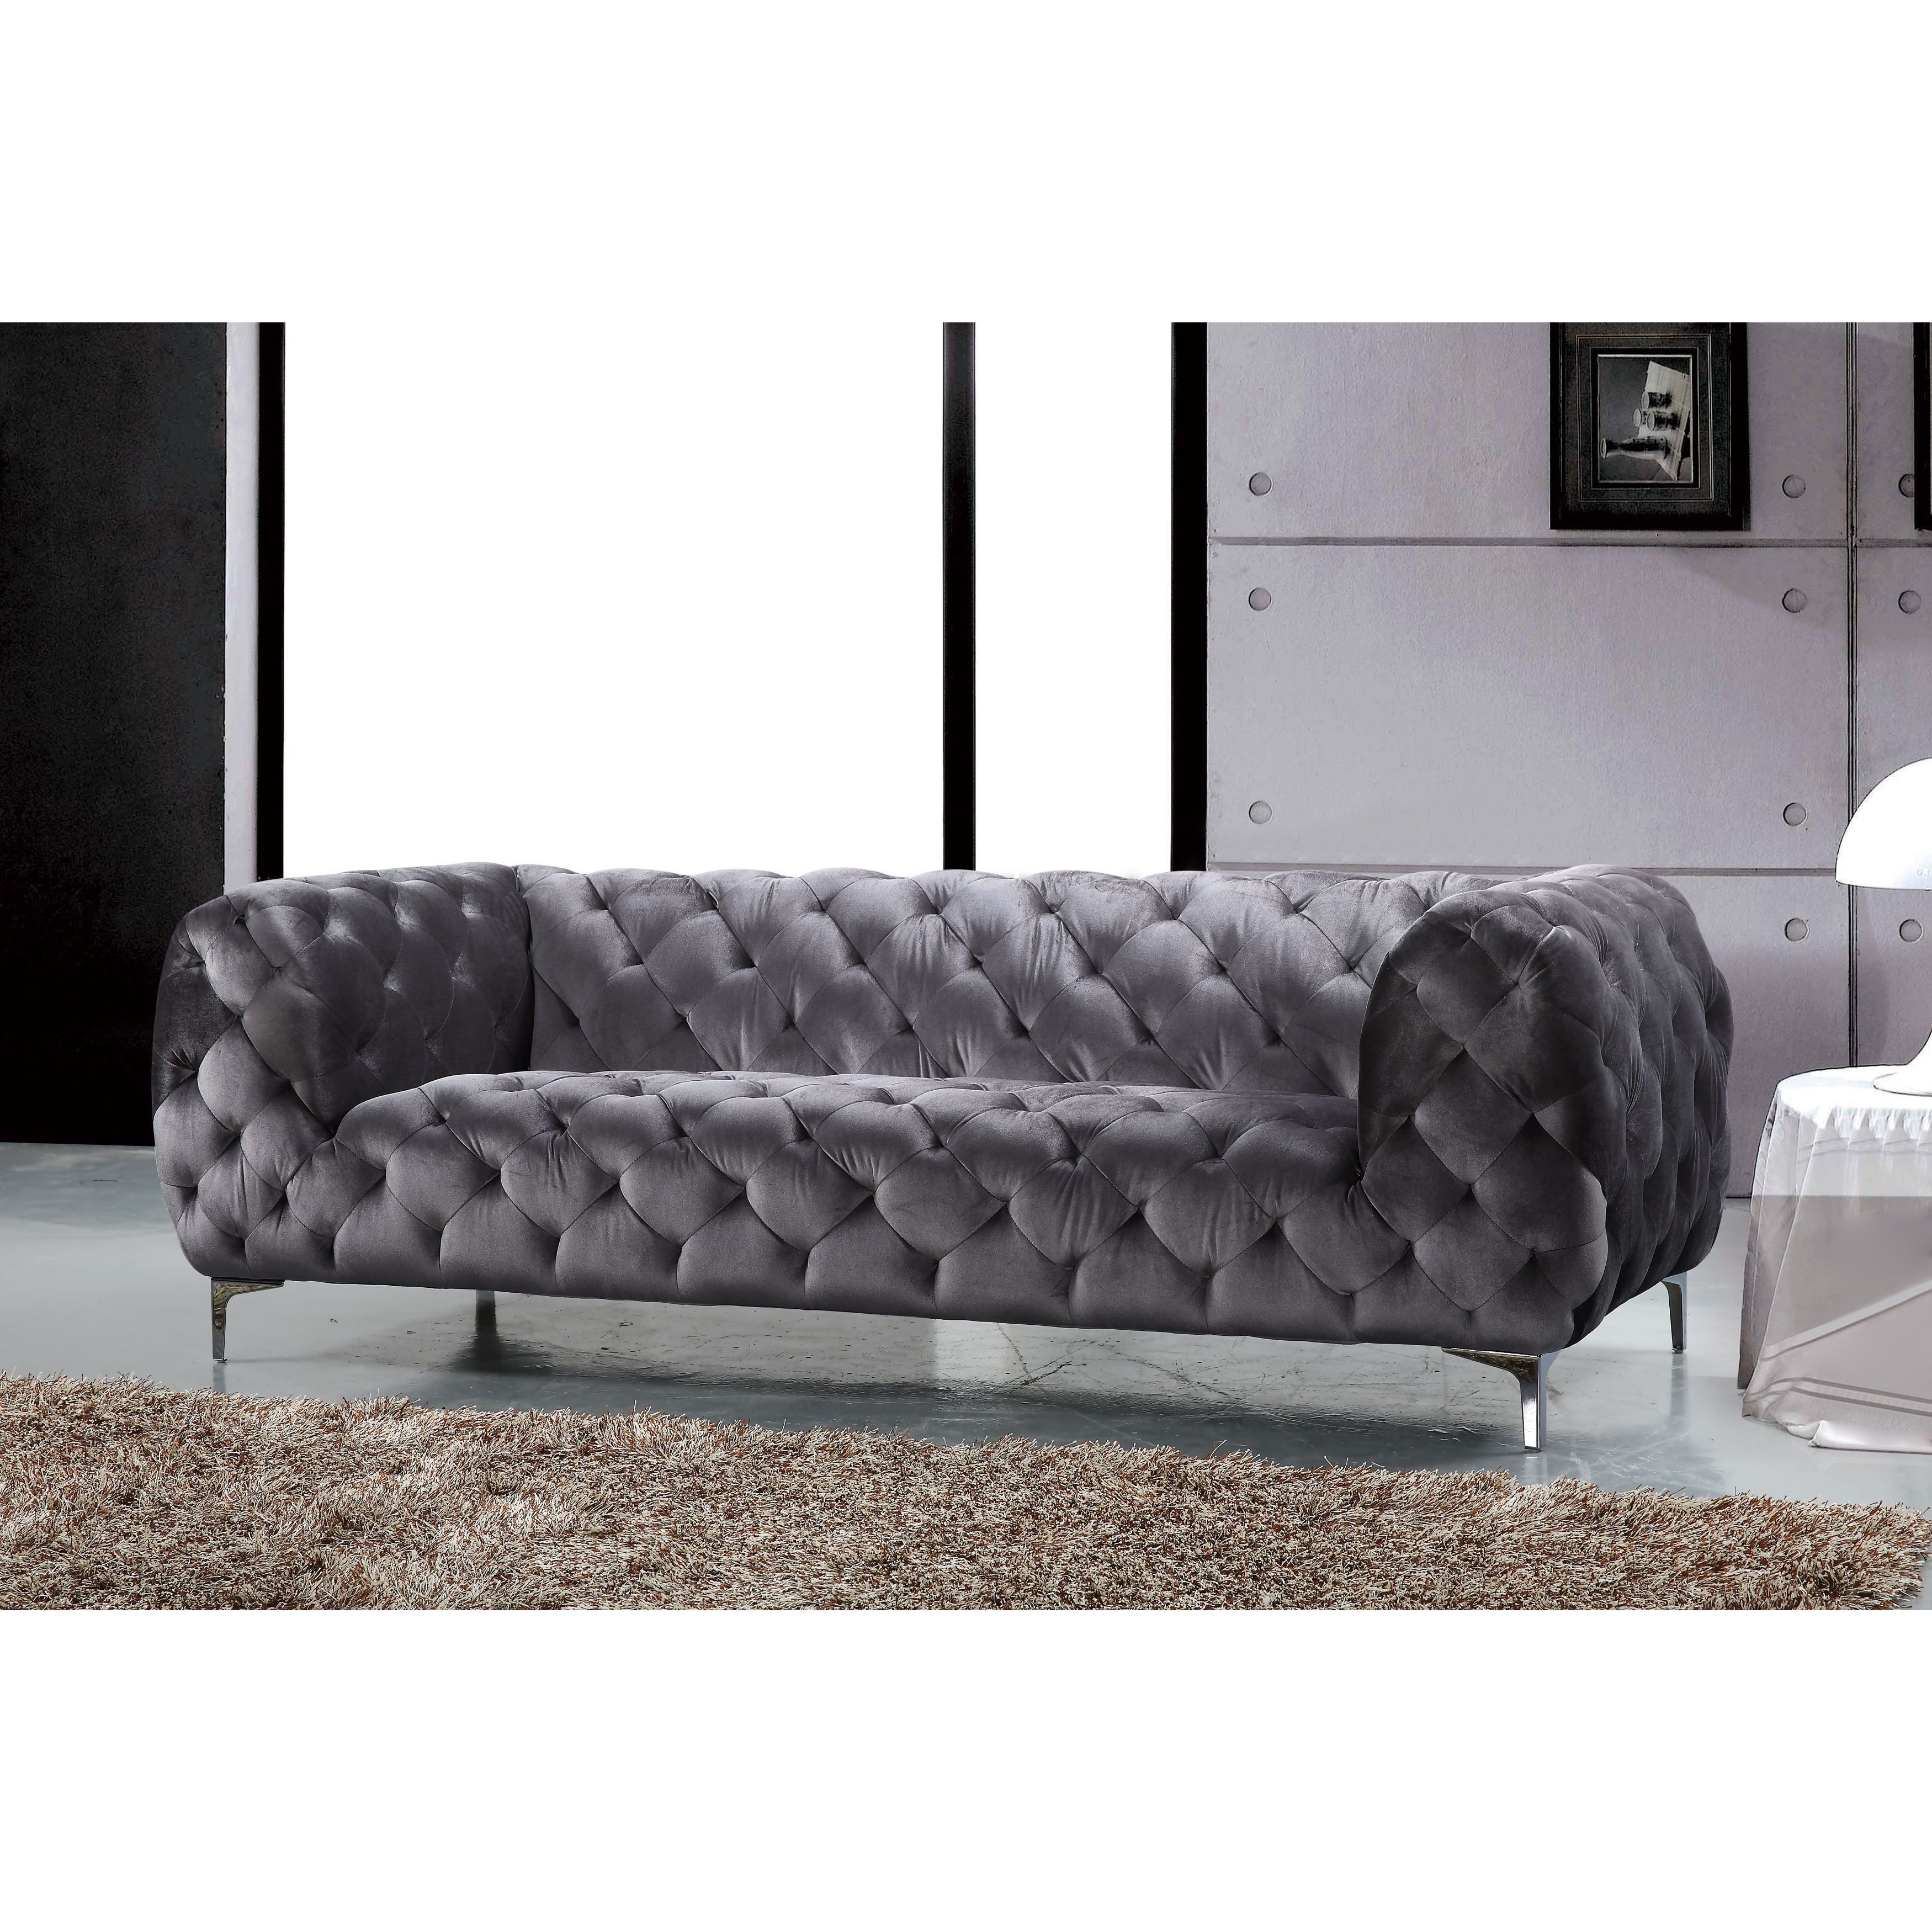 Shop Meridian Mercer Grey Velvet Sofa – Free Shipping Today Within Mercer Foam Oversized Sofa Chairs (View 7 of 25)